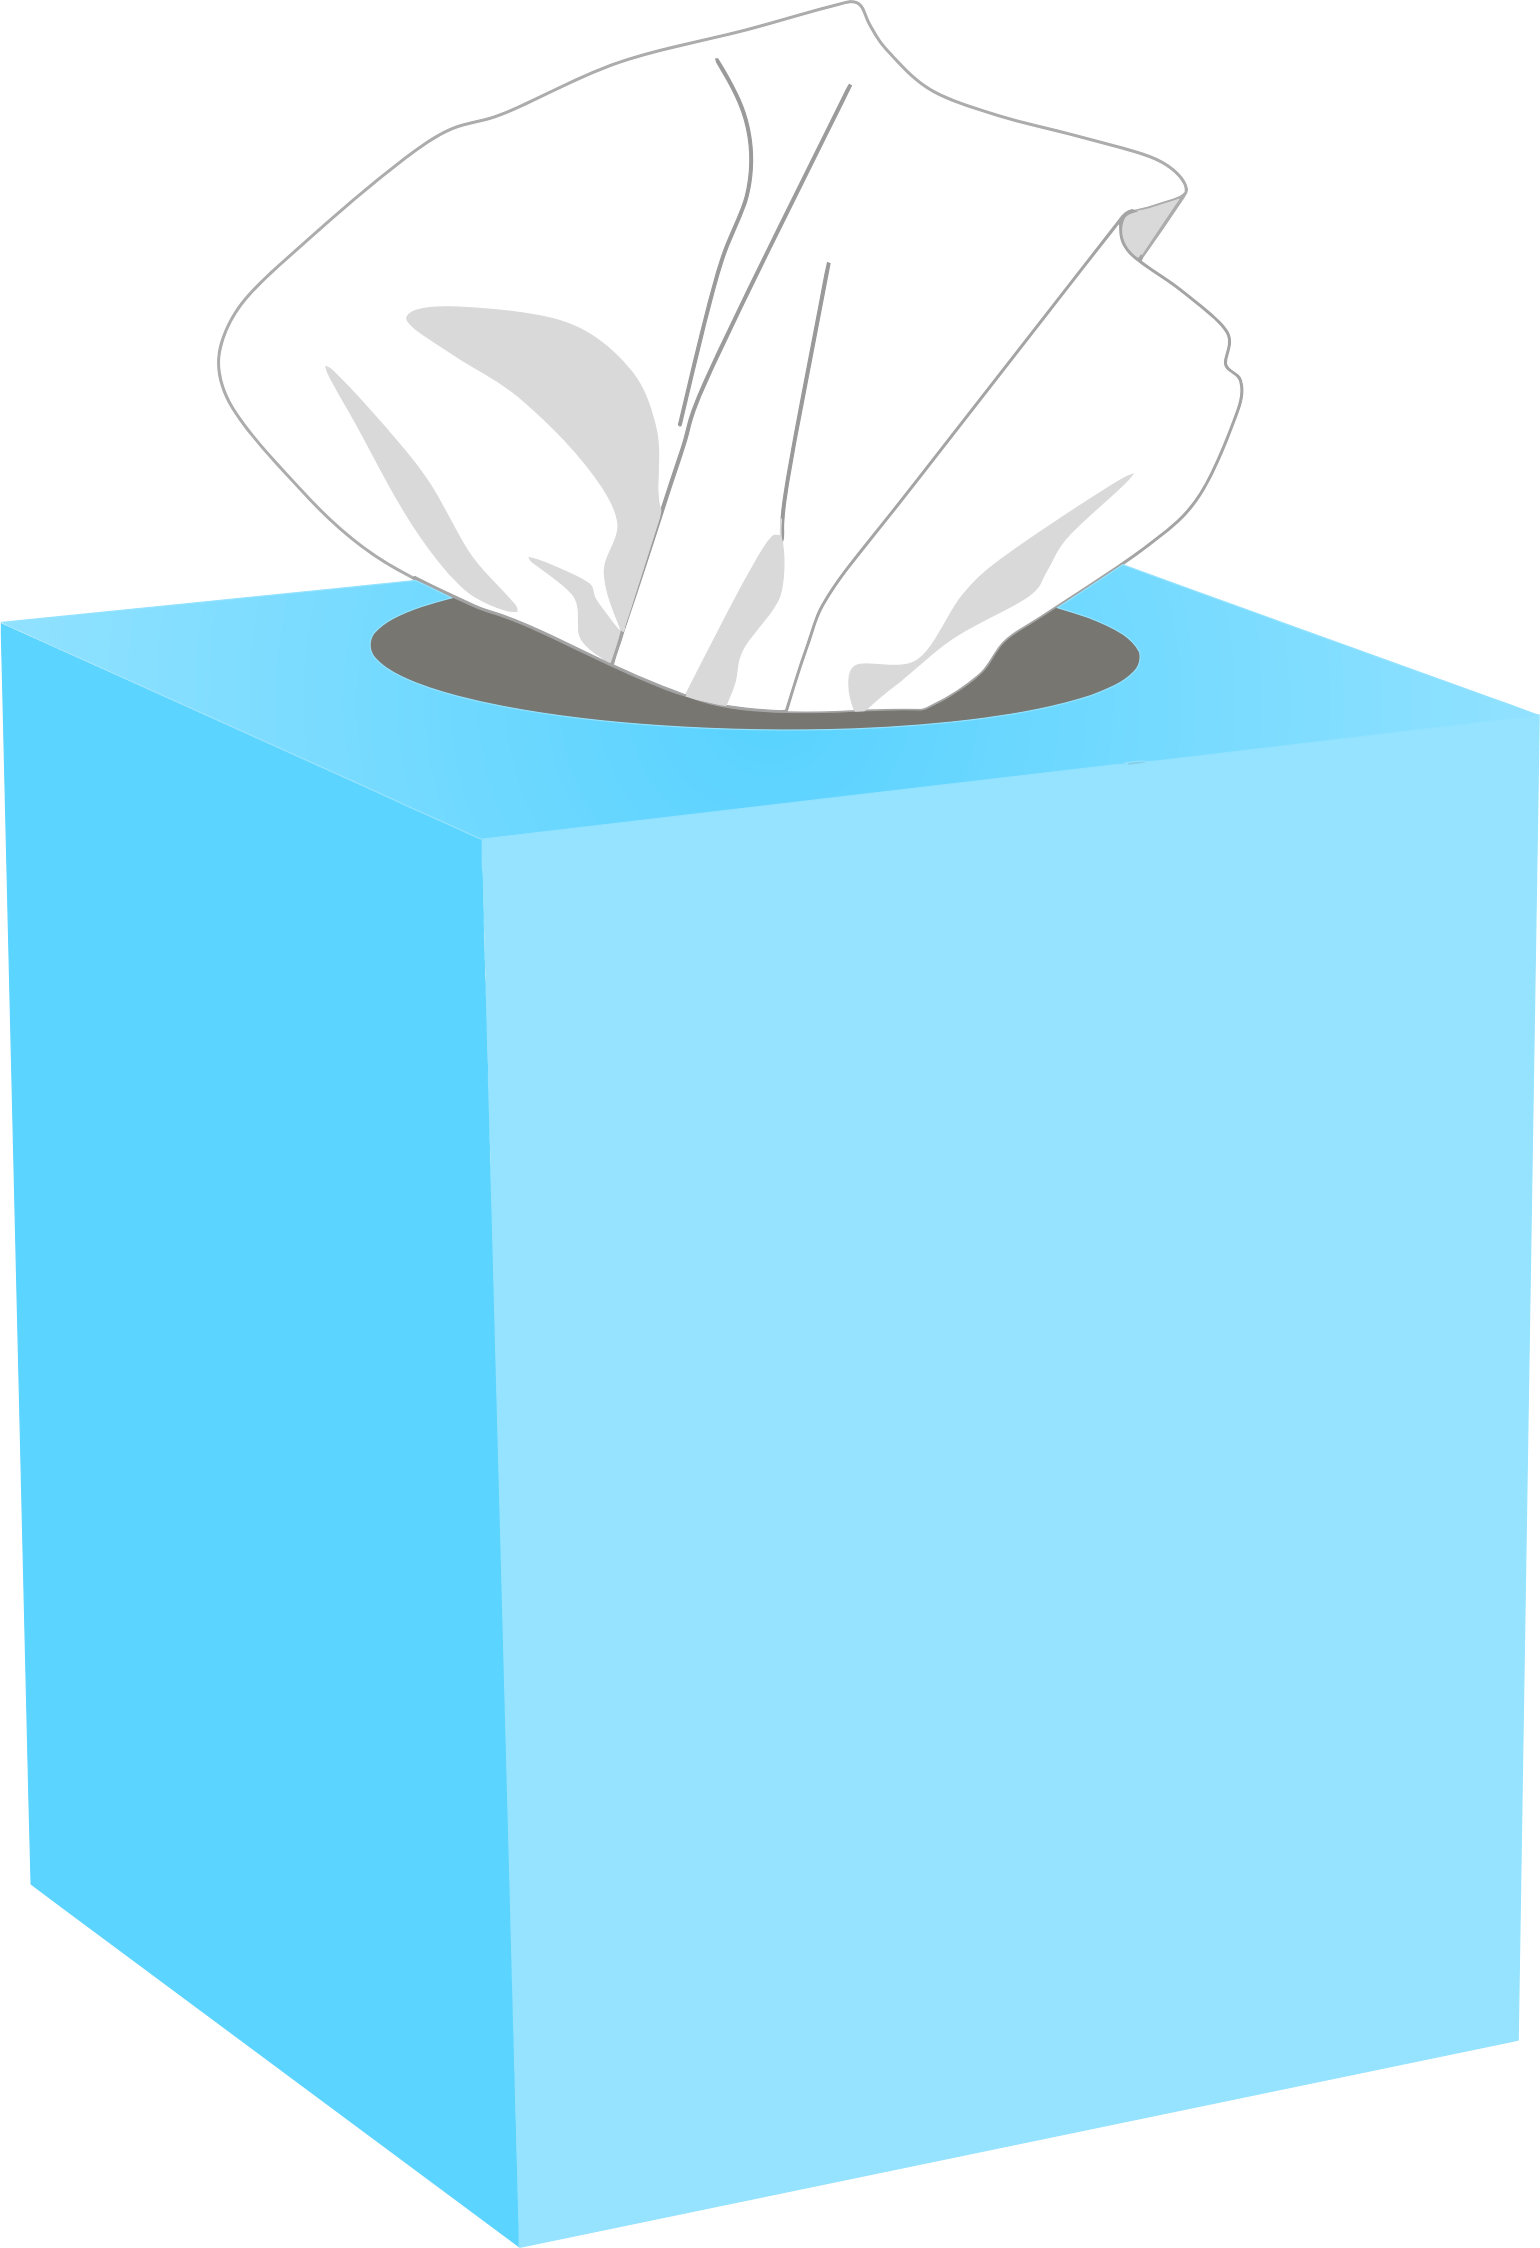 Box Of Tissues by GDJ